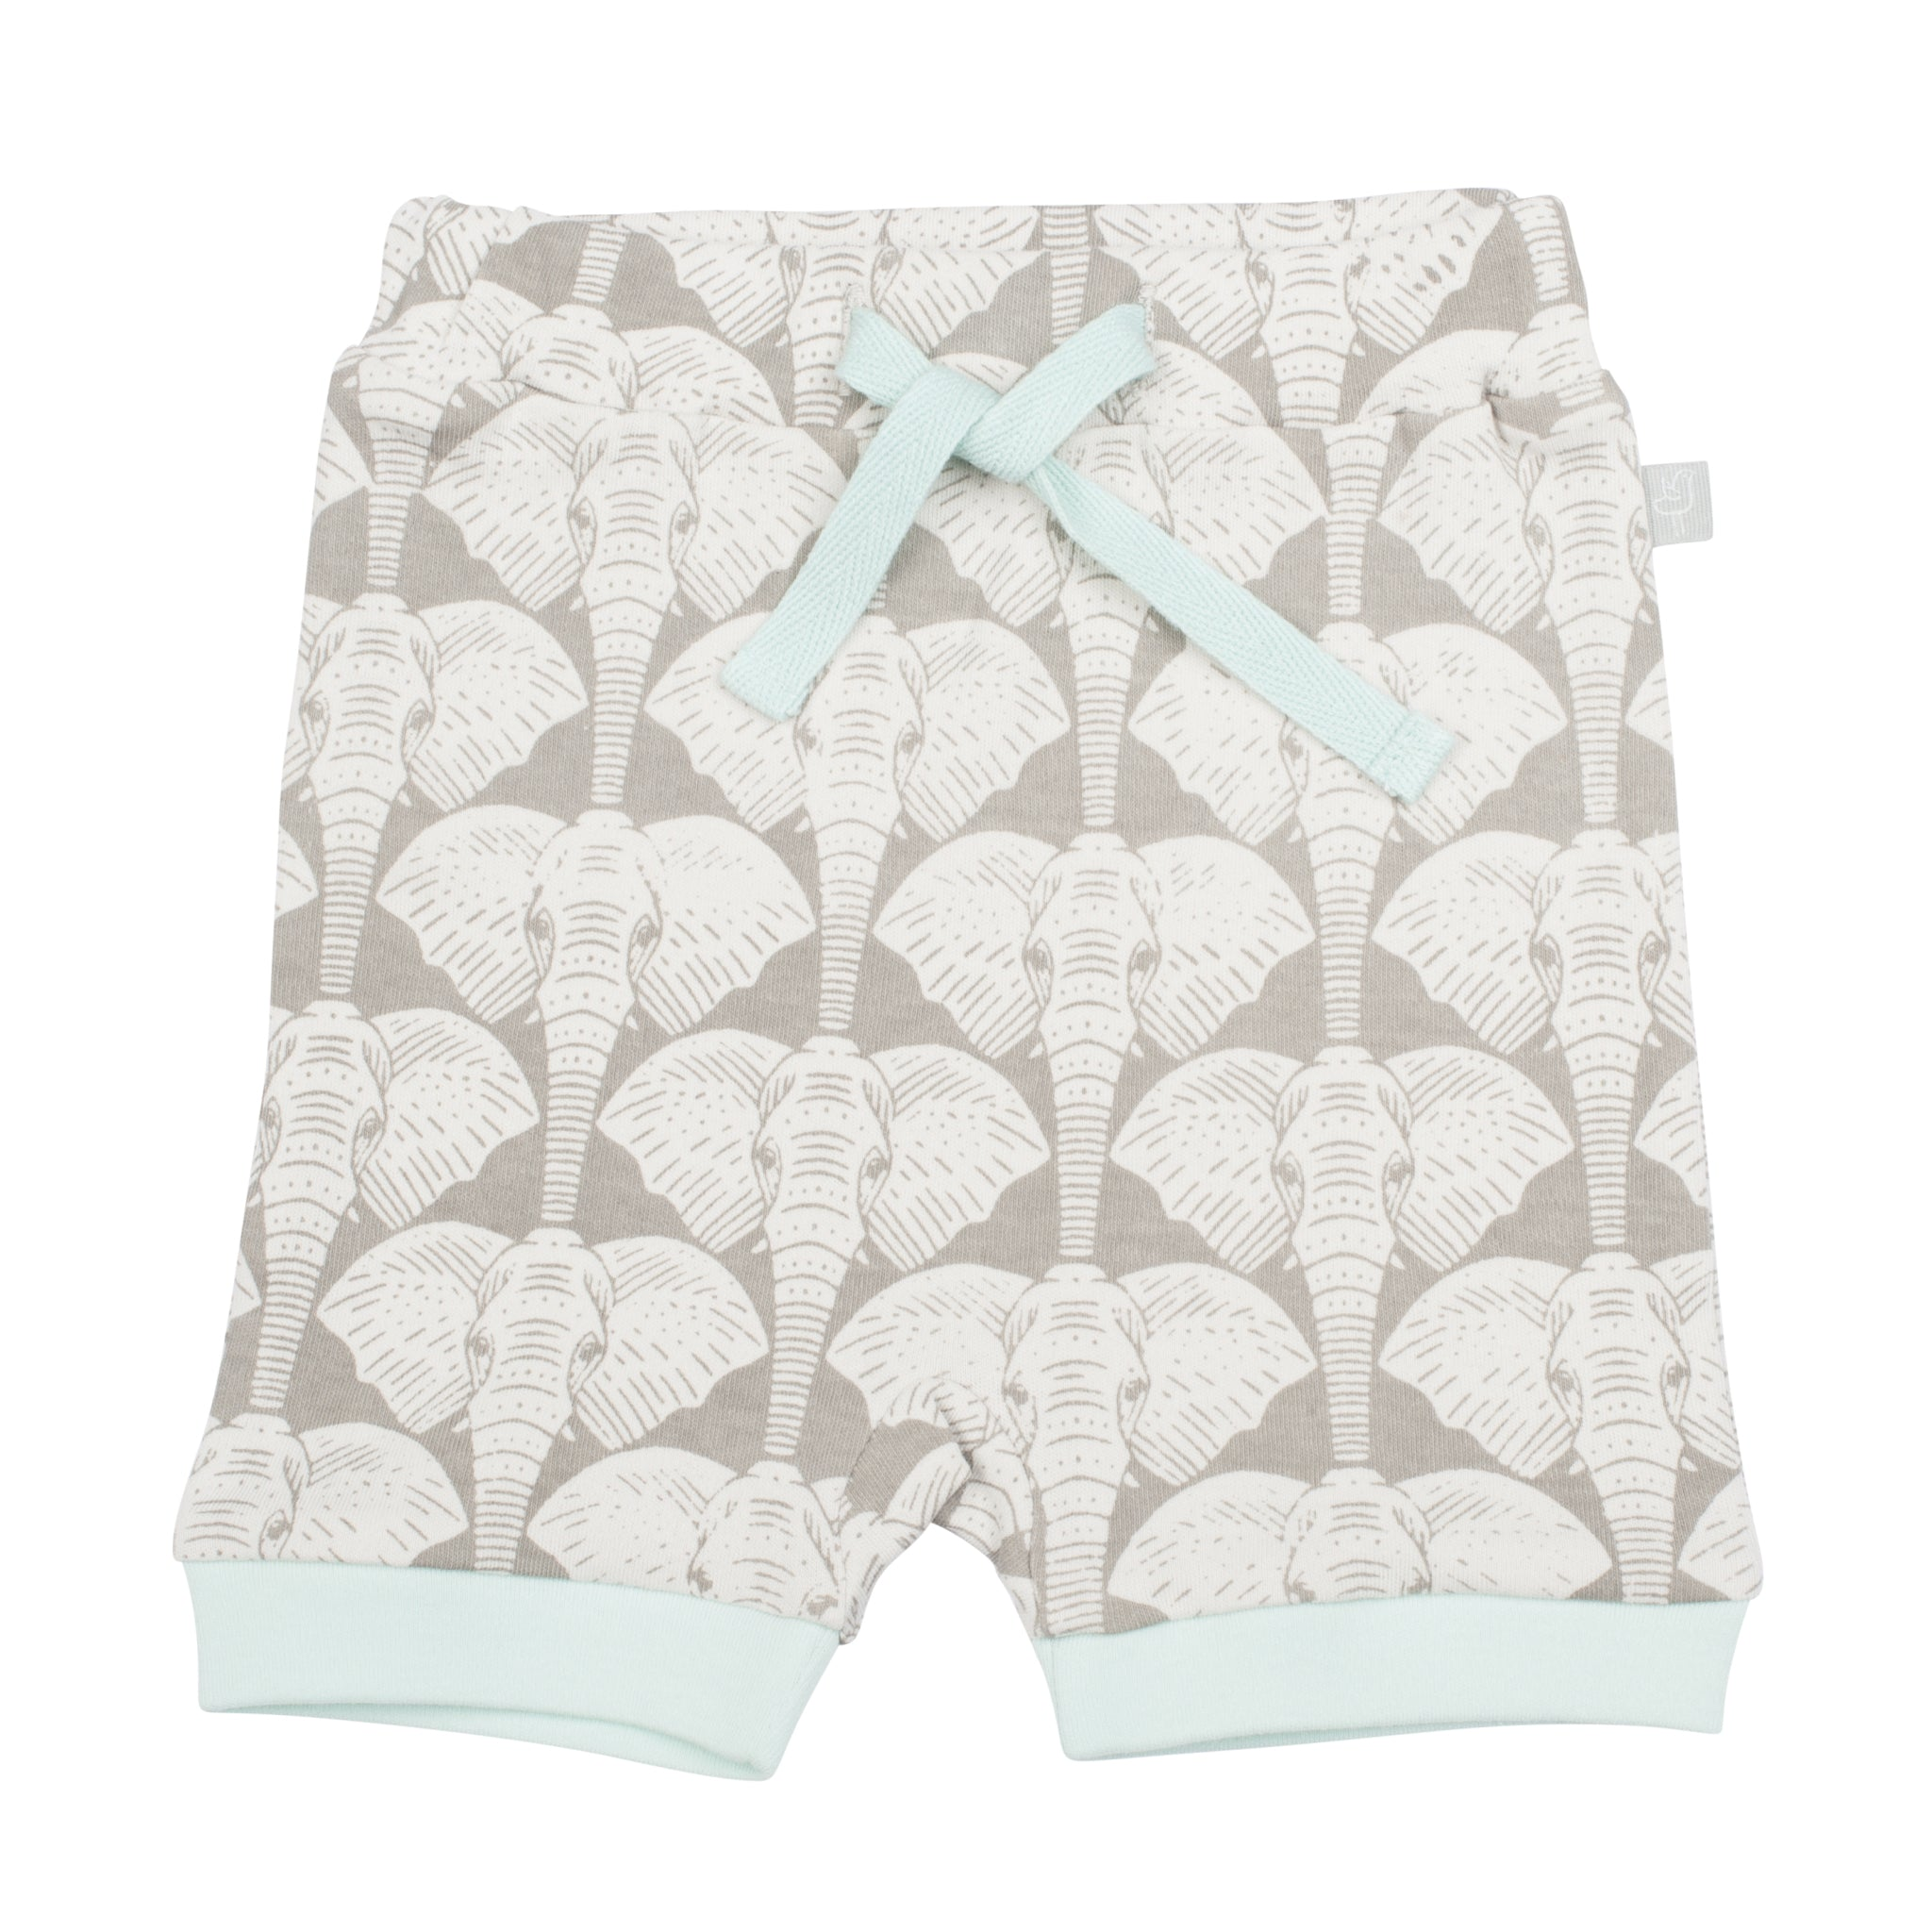 Shorts in Elephant